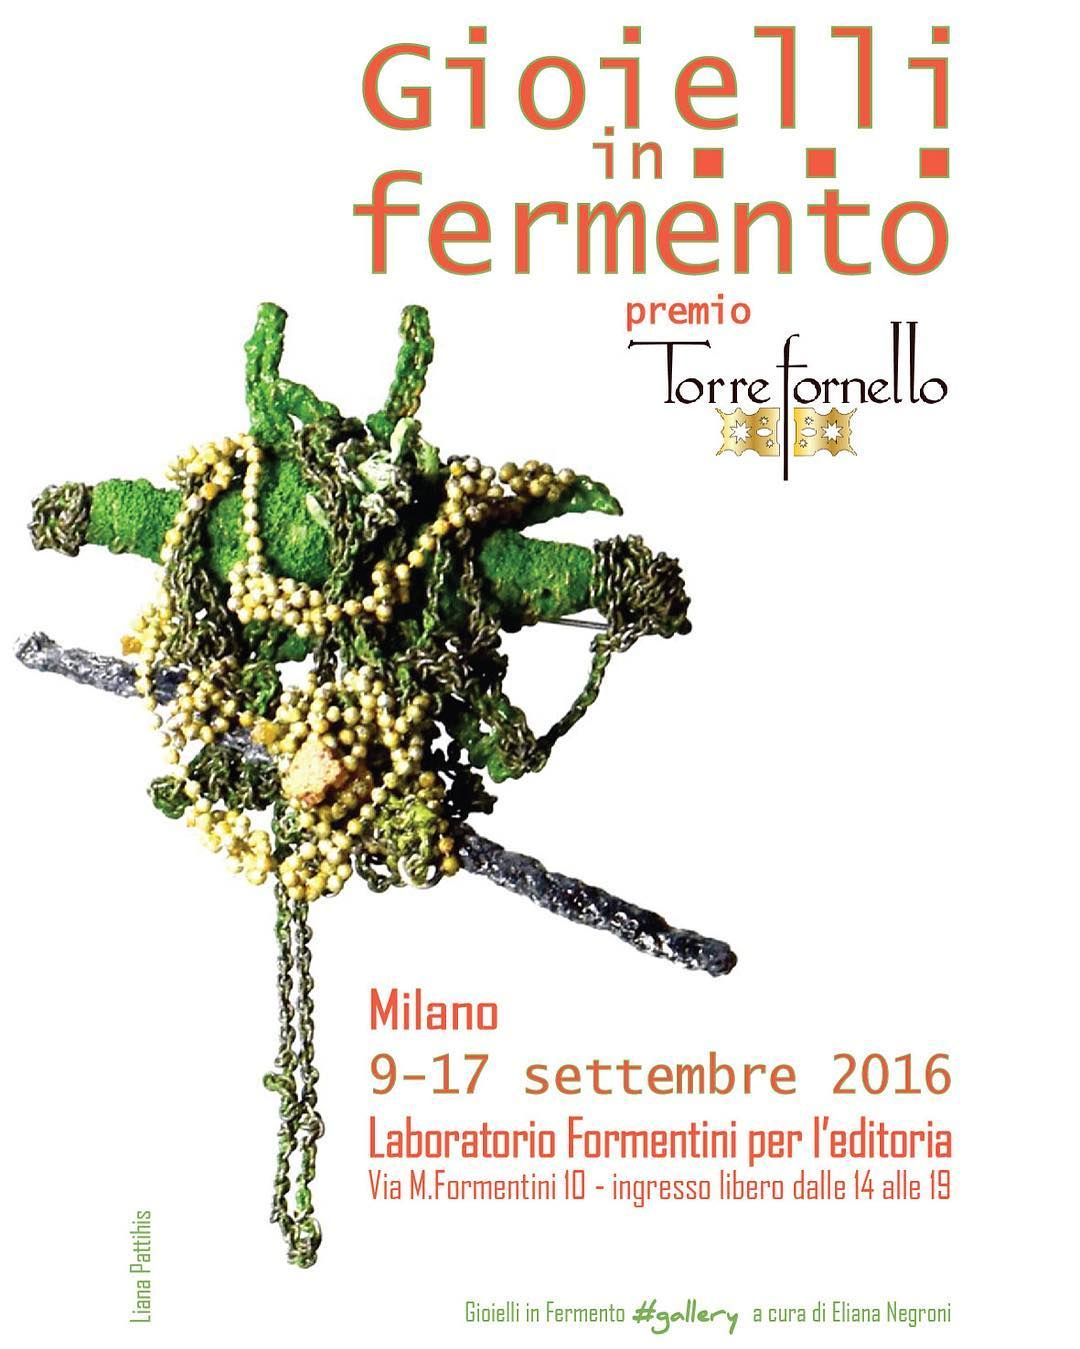 #comingsoon in #Milano #laboratorioformentini #Brera district #artjewelry exhibition and talk #savethedate Sept. 17 #ajfishere #themorningbark agc #associazionegioiellocontemporaneo @Torrefornello #premiotorrefornello #jewelleryactivist #unconventionaljewellery #wearableobject #brooch #gioielliinfermento #charonkransenarts